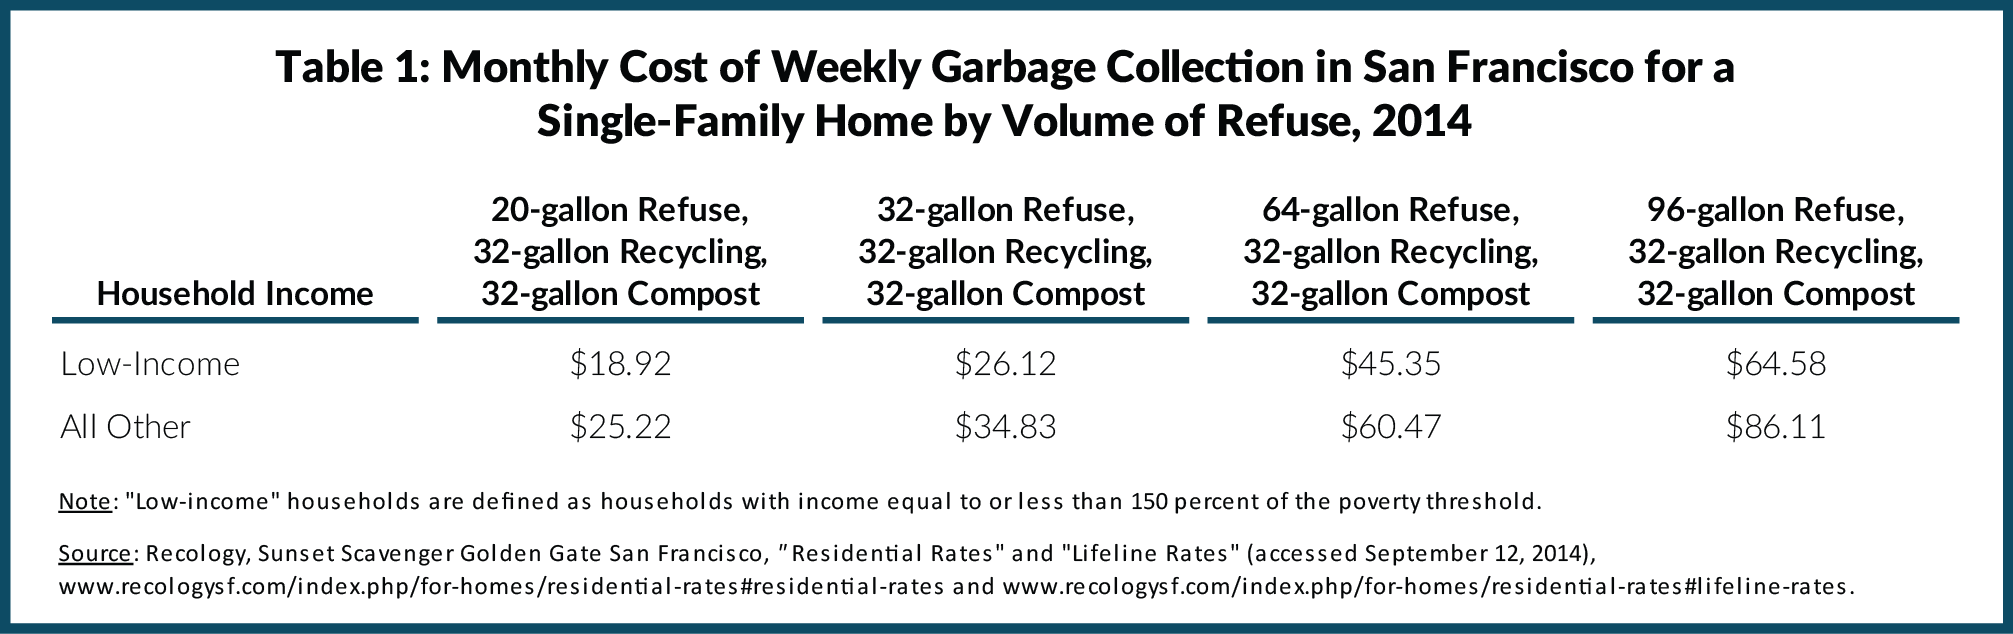 Table 1: Monthly Cost of Weekly Garbage Collection in San Francisco for a Single-Family Home by Volume of Refuse, 2014